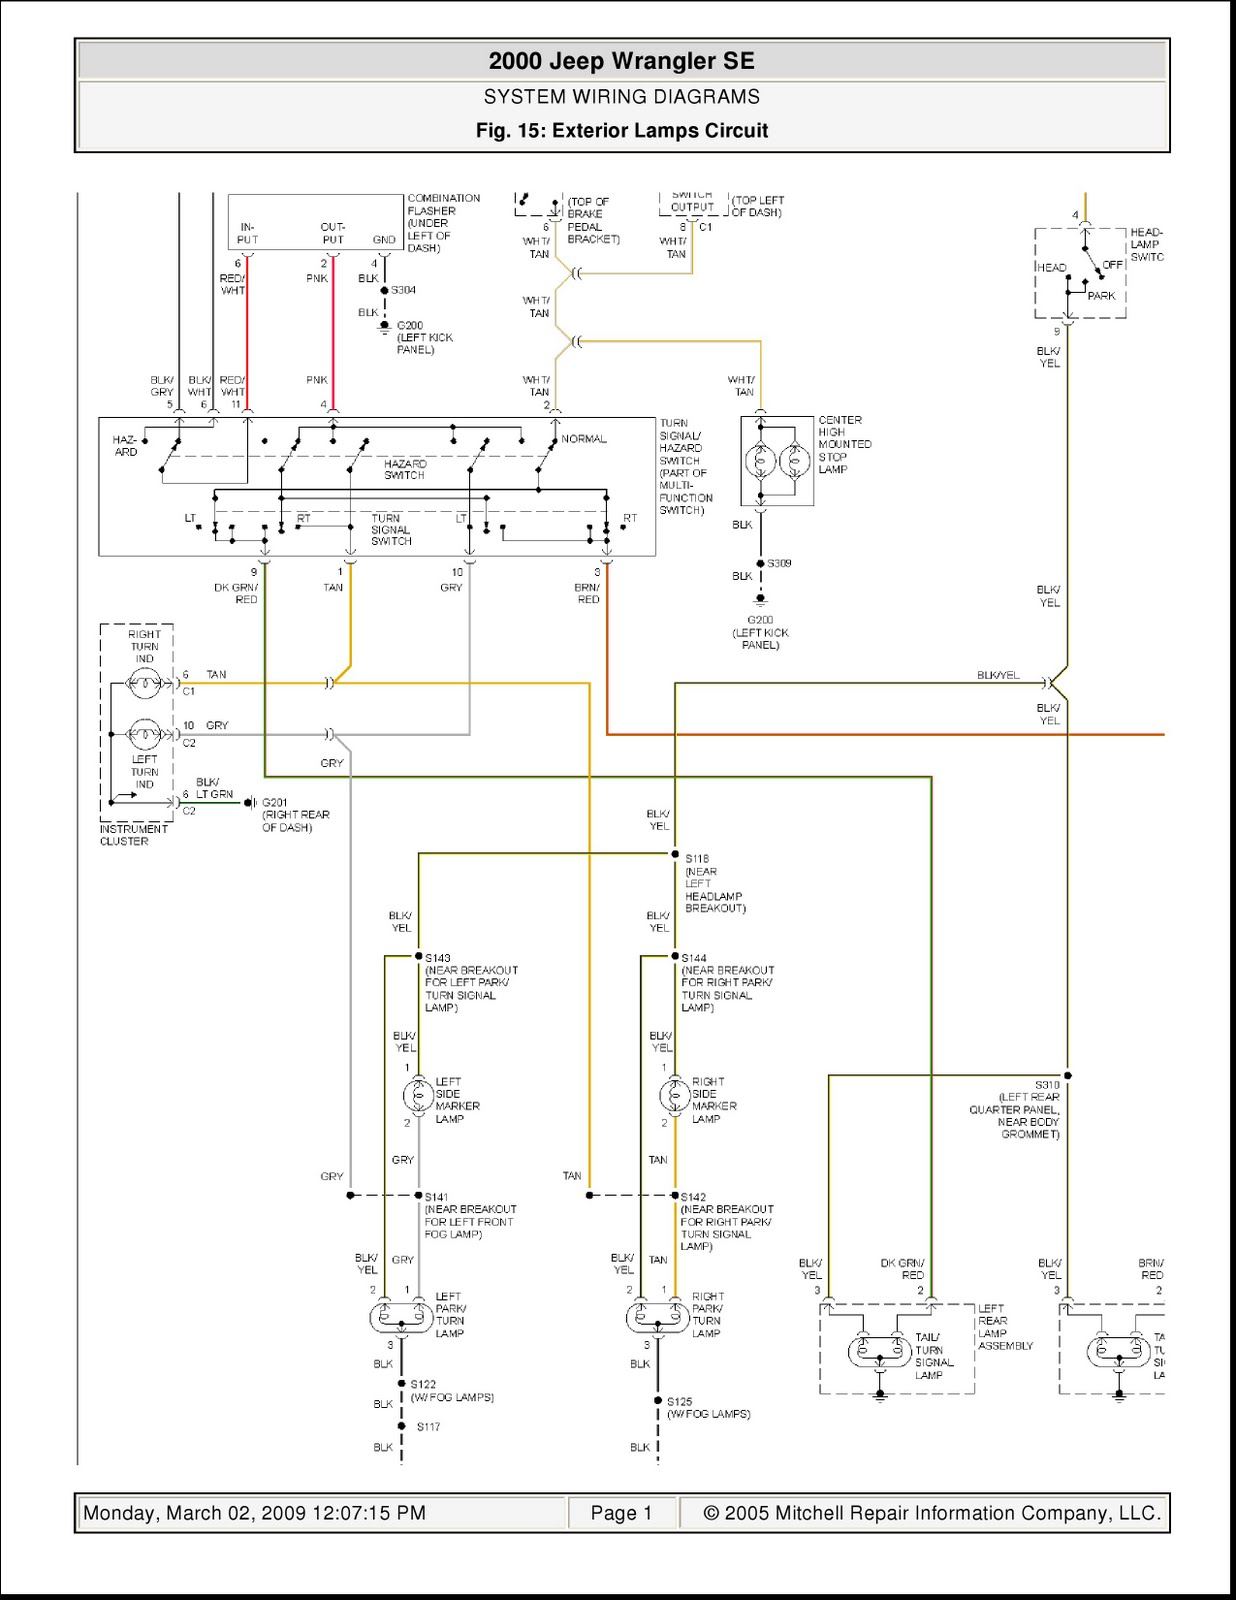 Wiring Diagram Jeep Wrangler : Jeep wrangler wire harness free engine image for